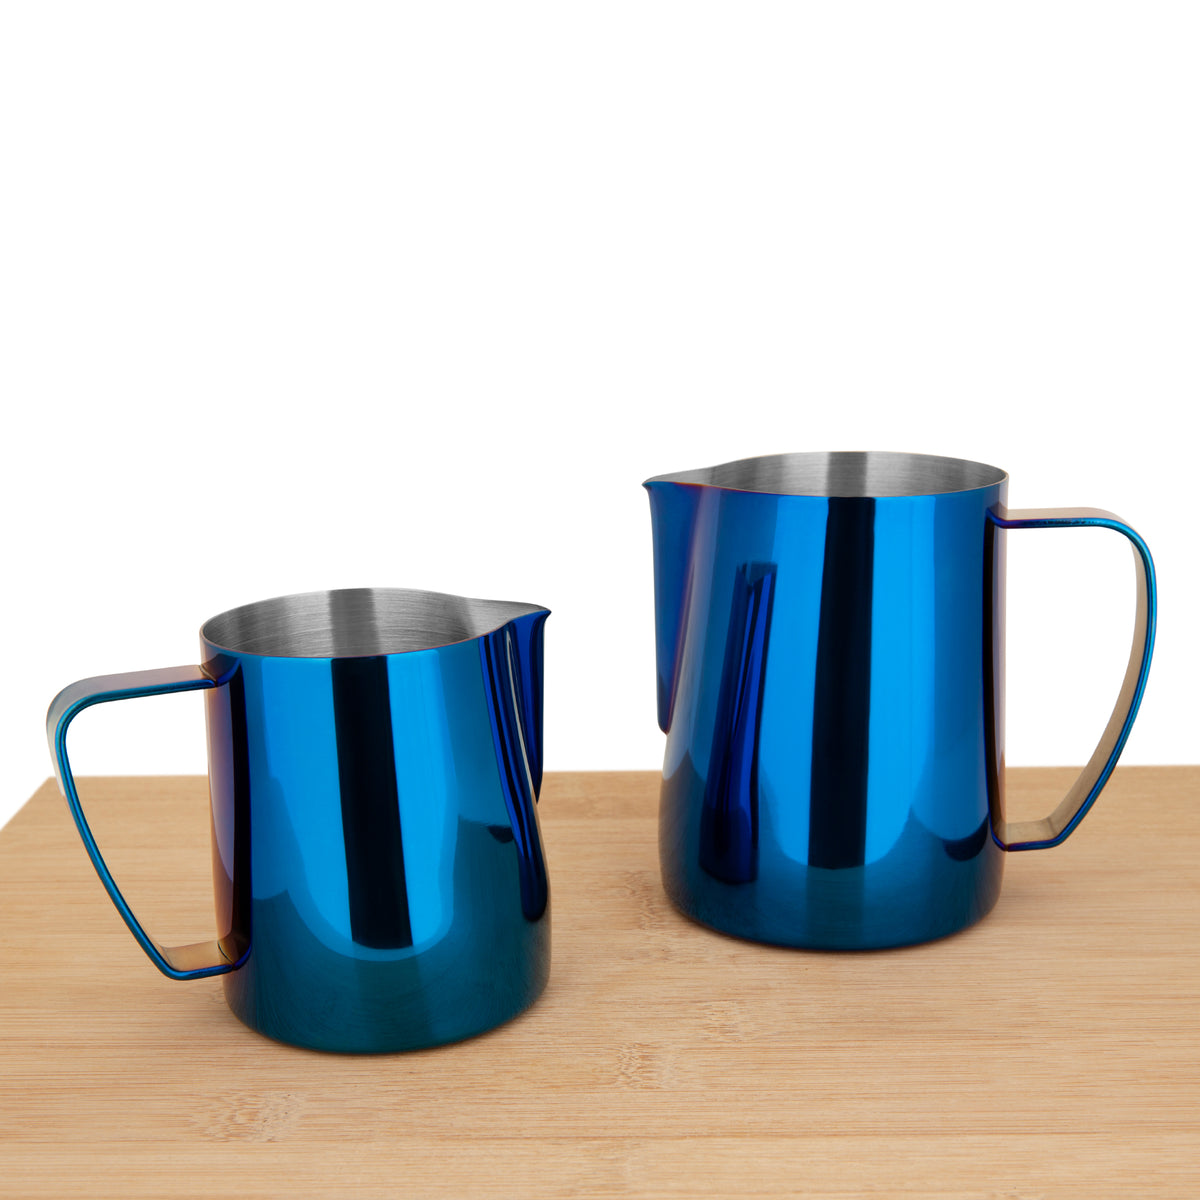 EspressoWorks Stainless Steel Milk Frothing Jug - Blue (350ml and 600ml)